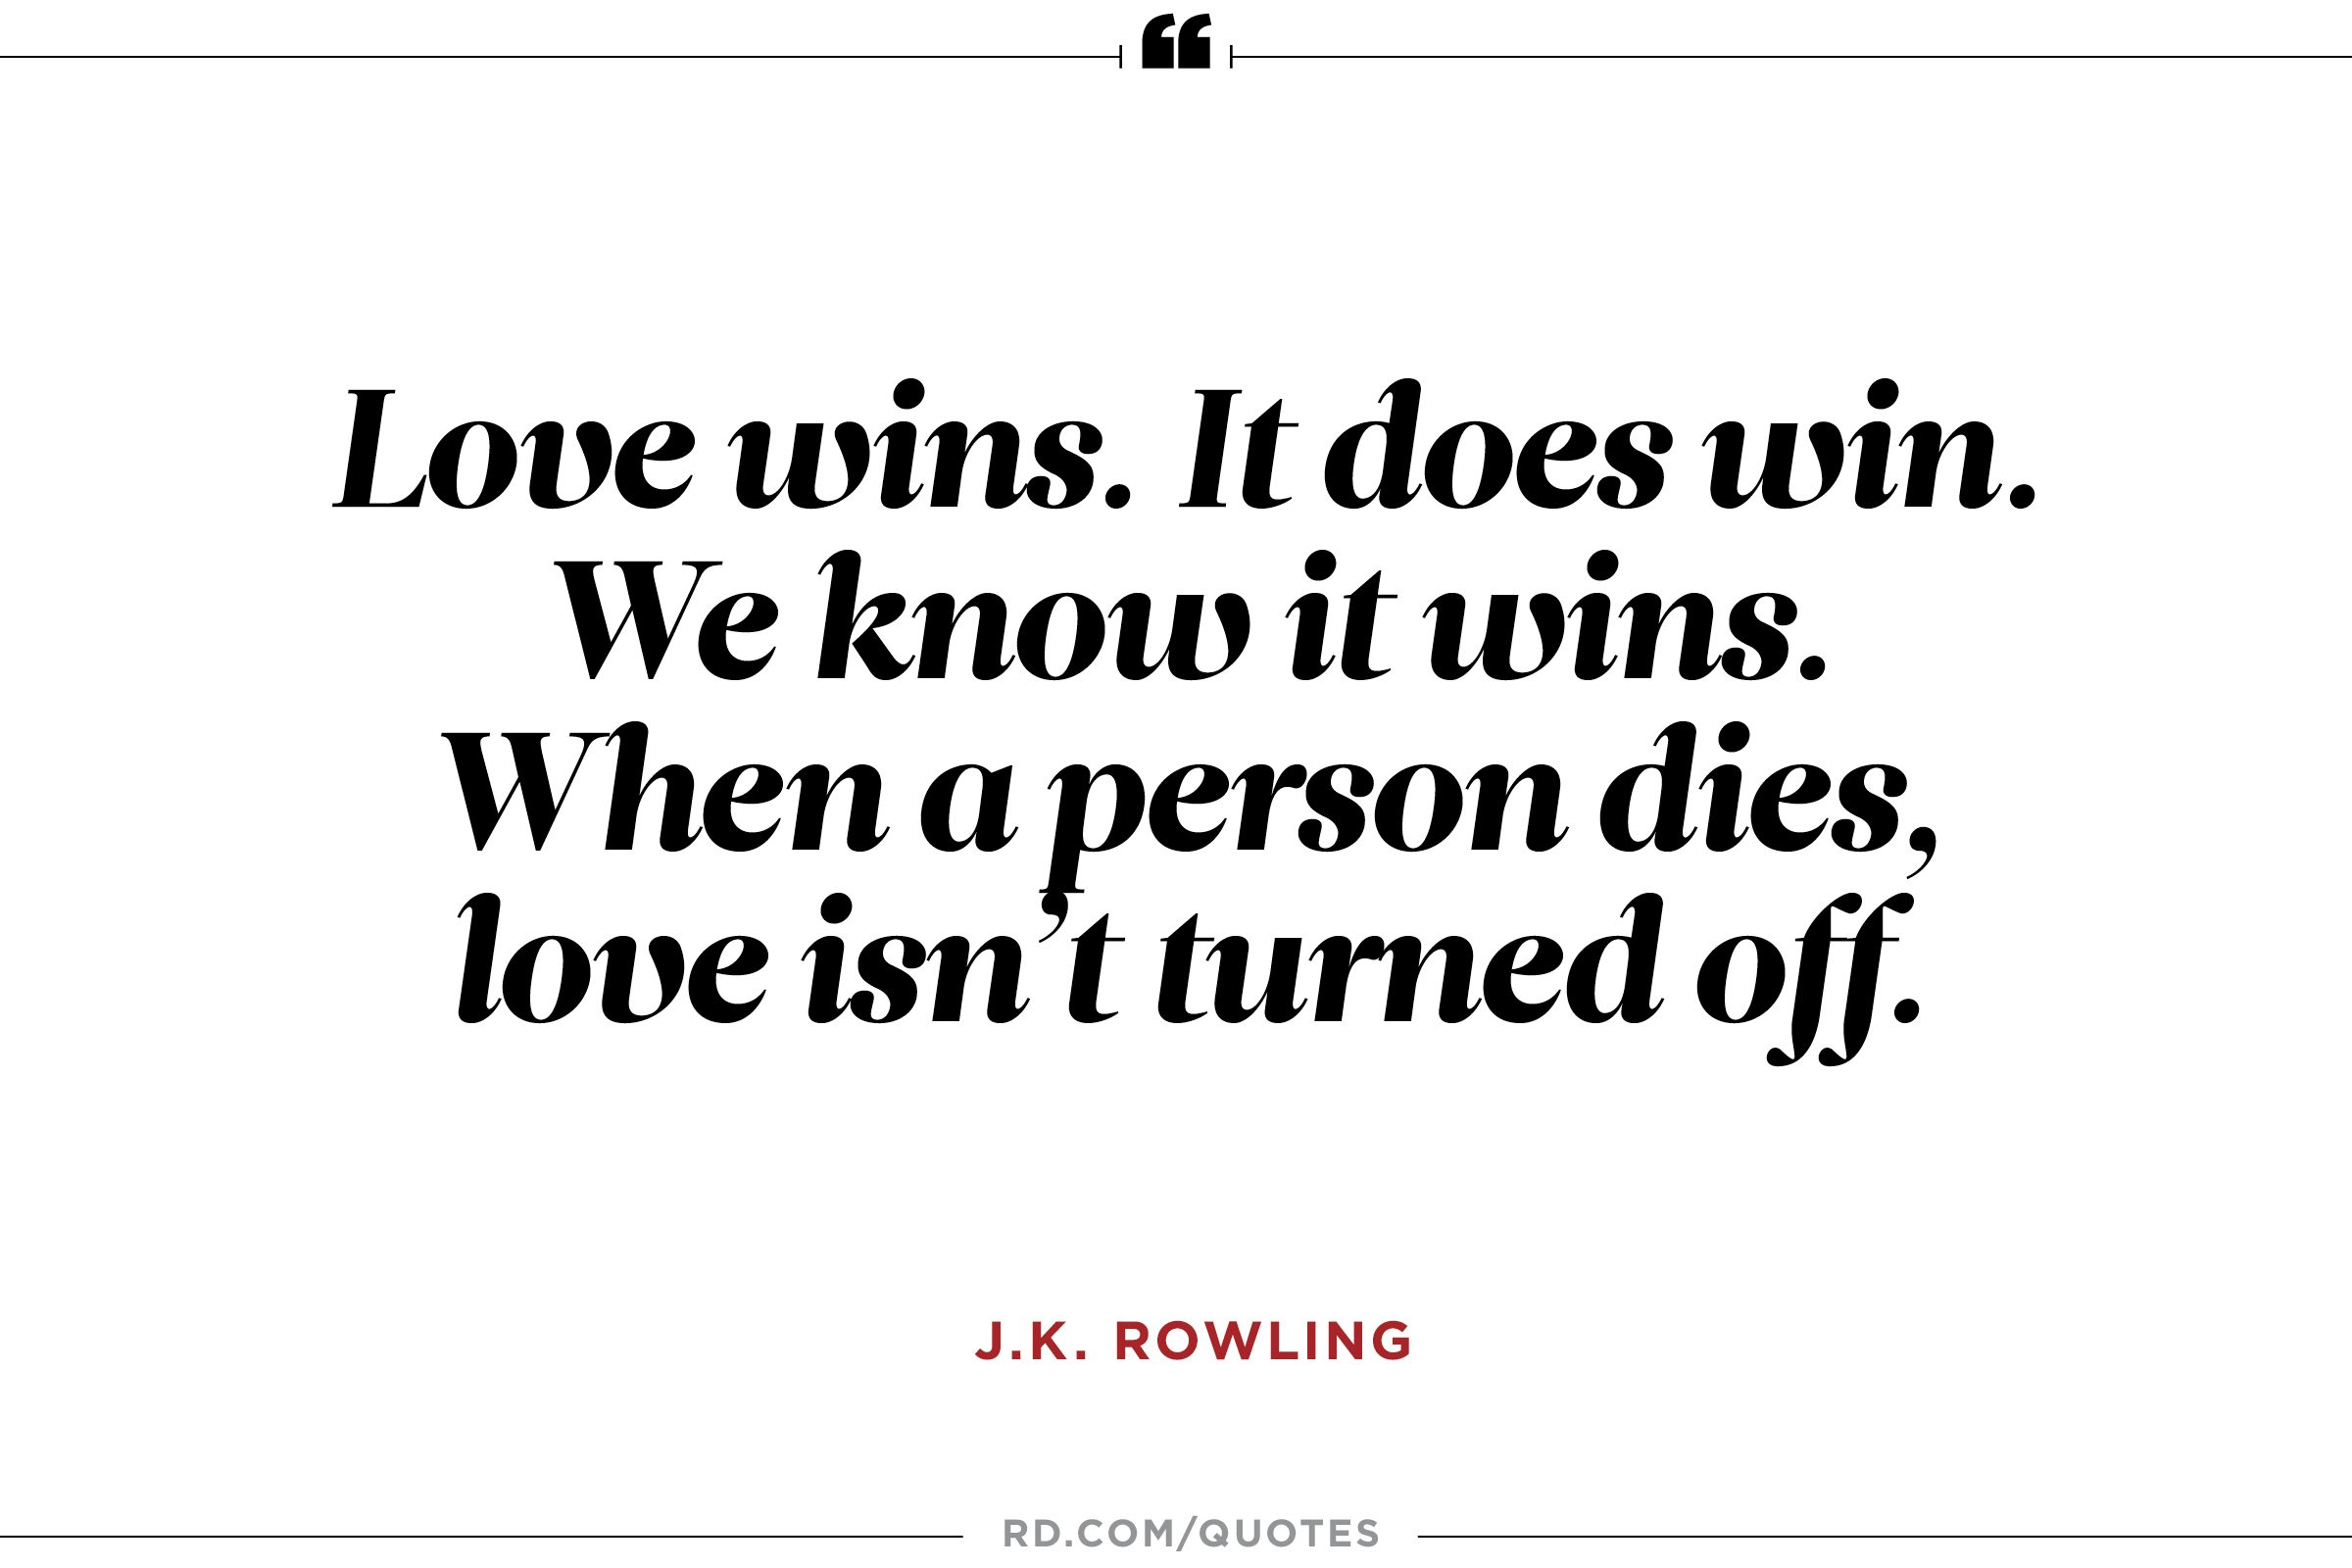 J K Rowling Quotes About Love : Rowling Quotes To Motivate You Through Any Slump Reader S